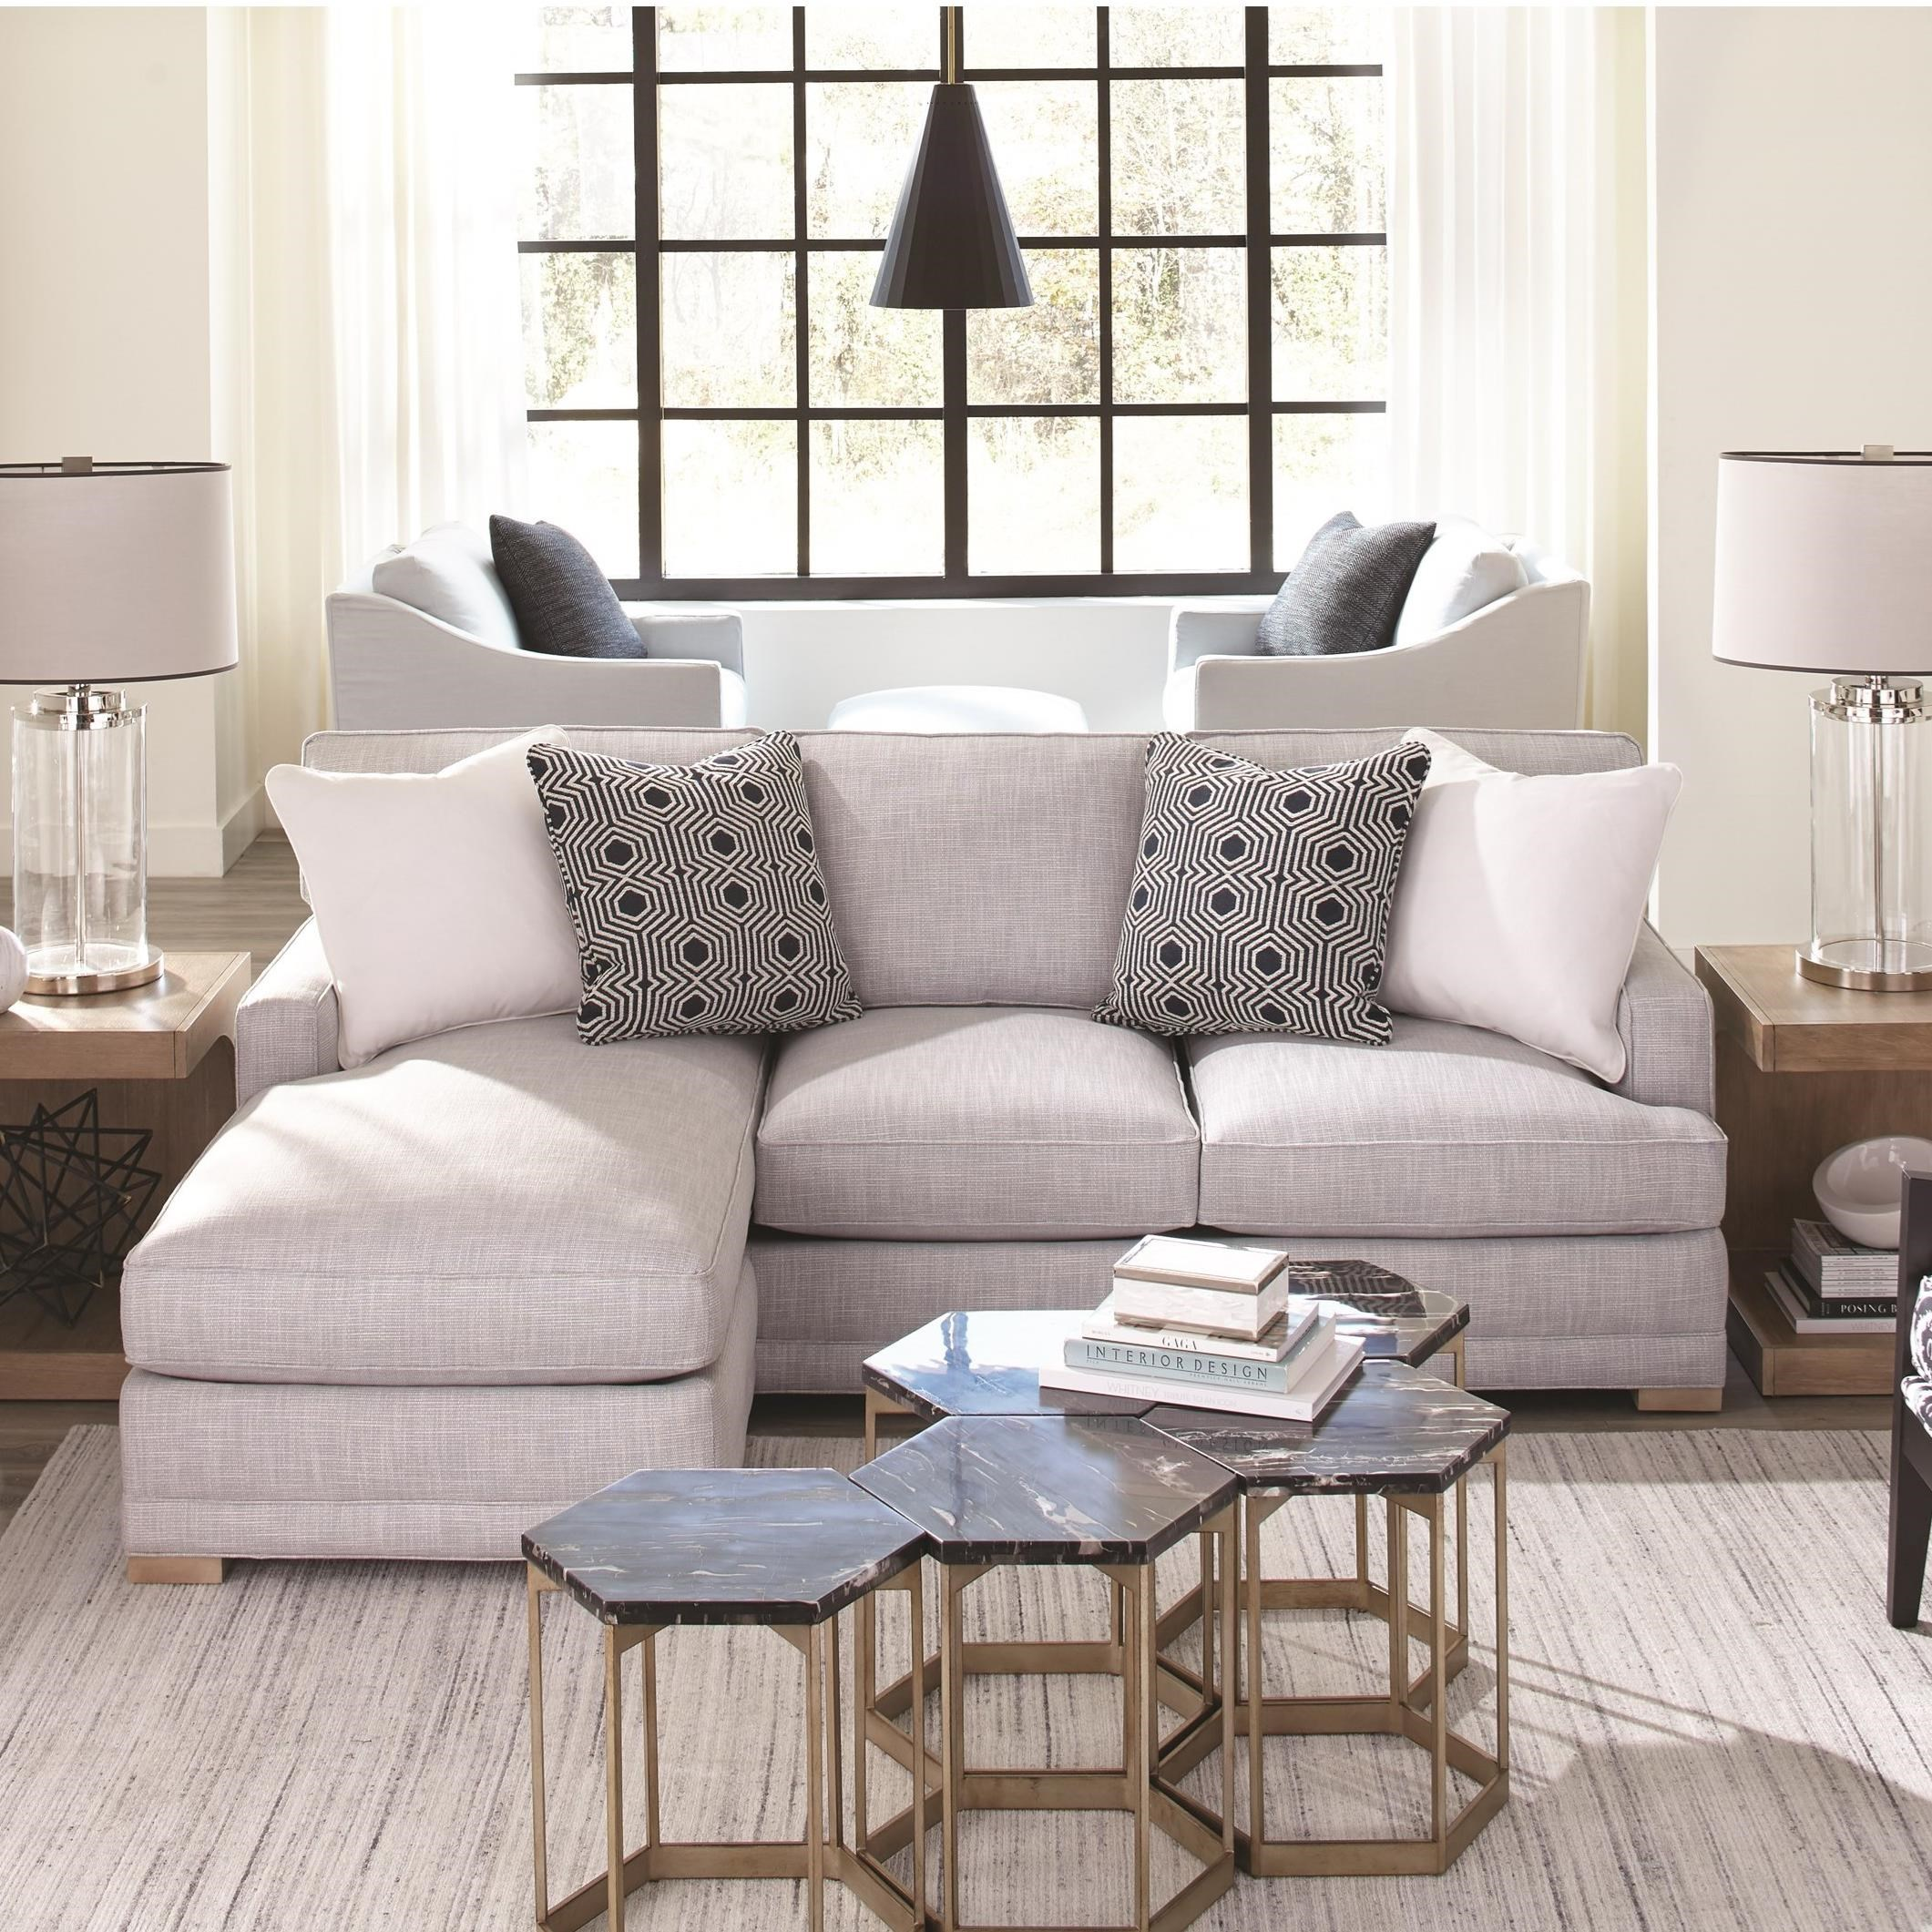 Grayson 2-Piece Sectional with RSE Chaise by Rowe at Baer's Furniture